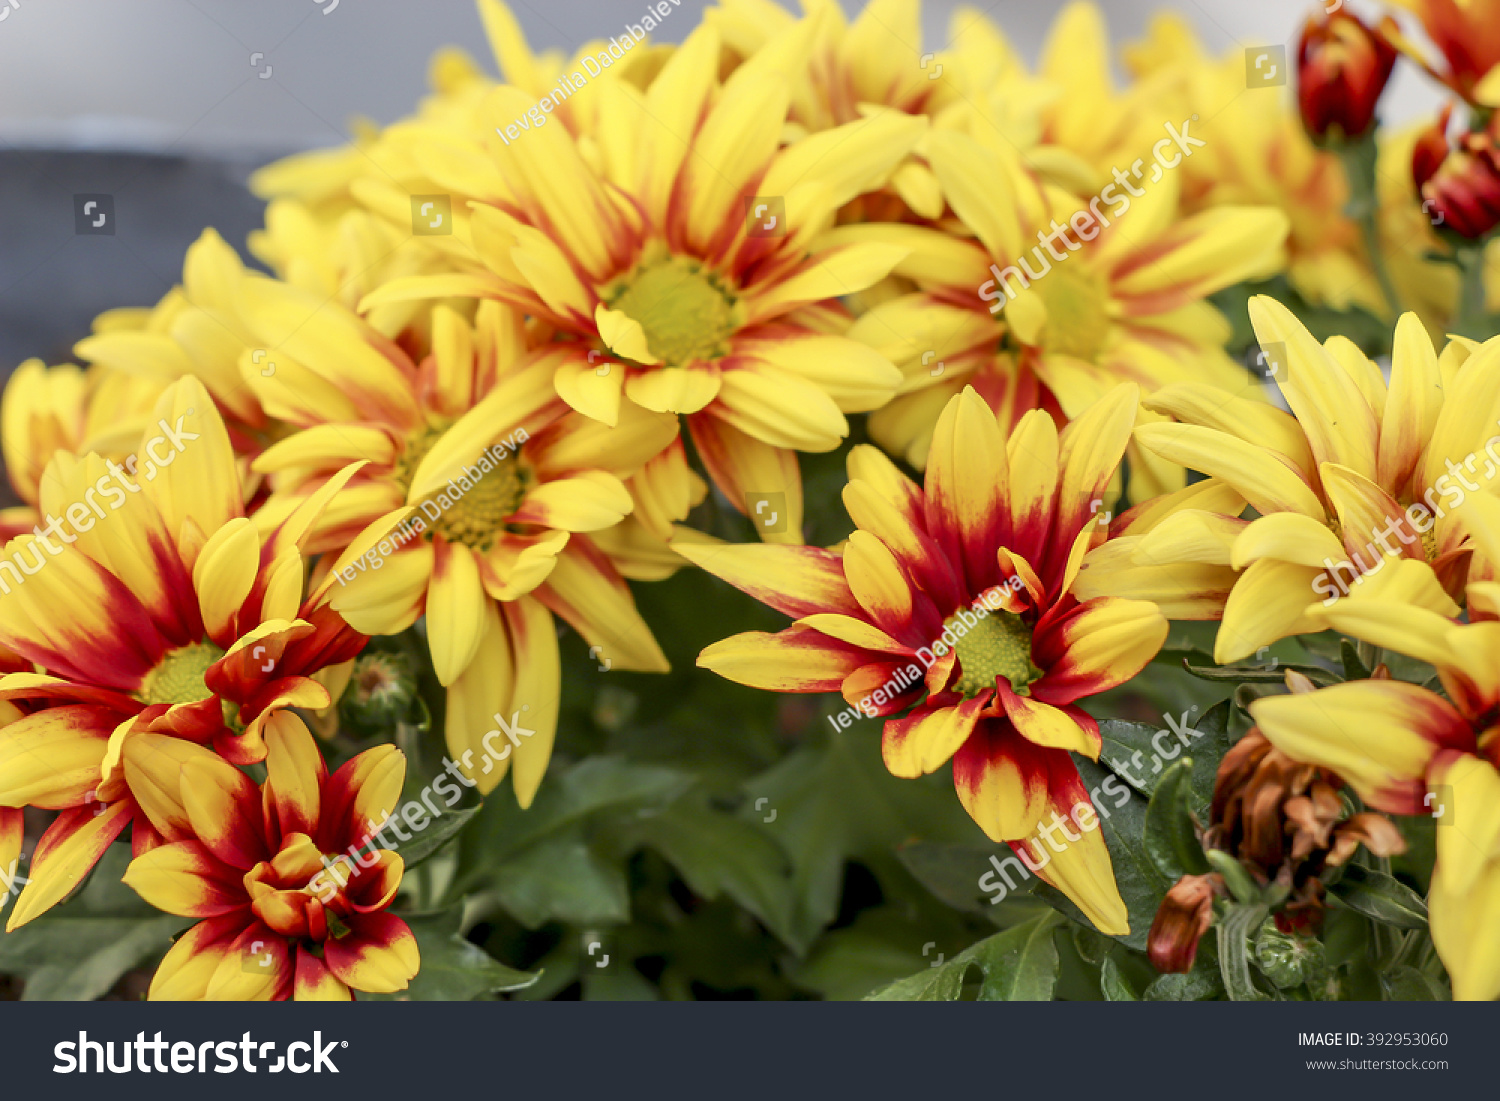 Bright spring flowersvarious fantastic flowers close up ez canvas id 392953060 mightylinksfo